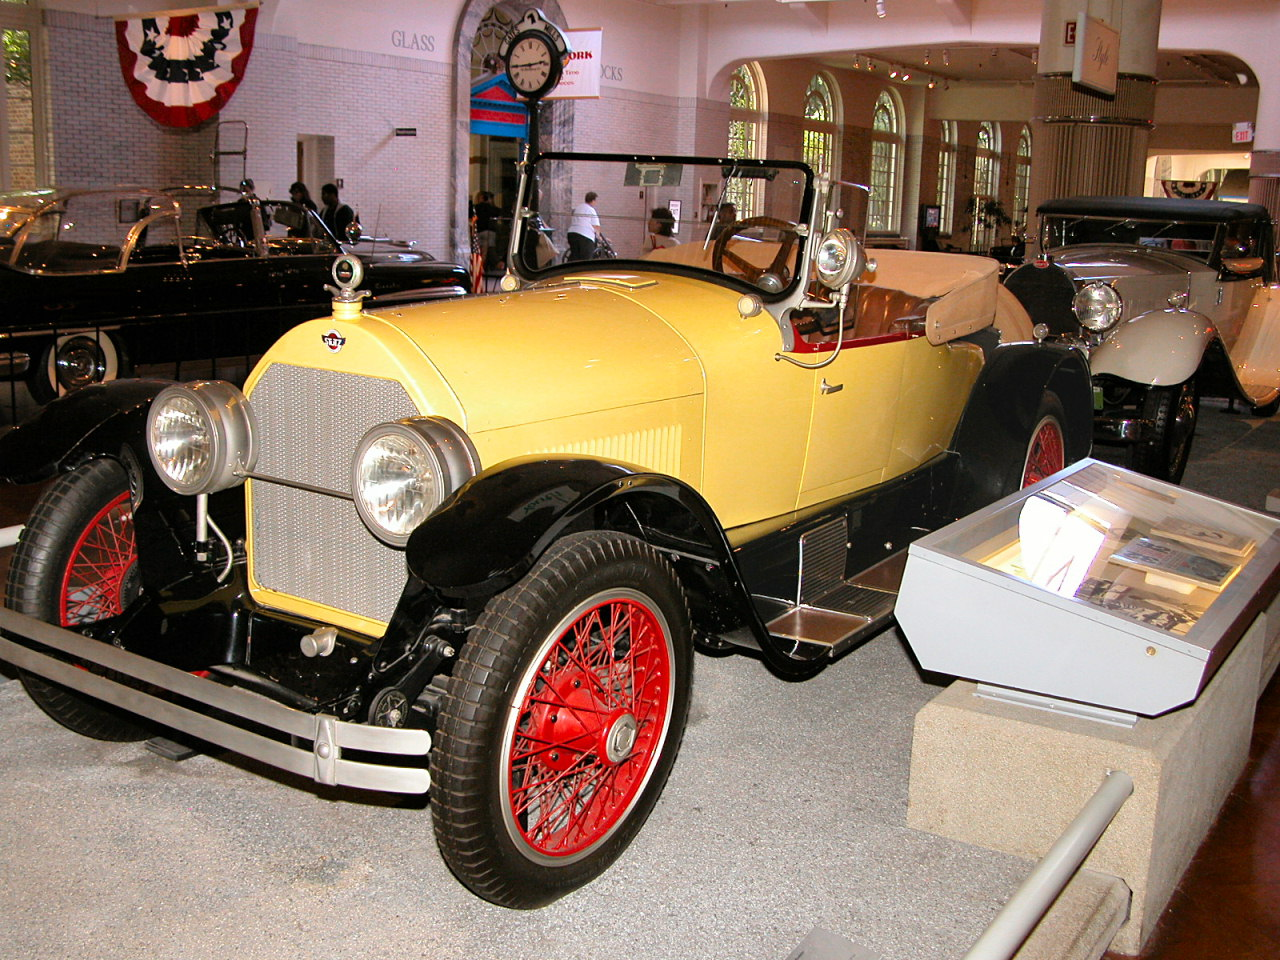 1923 Stutz Bearcat Roadster Yellow Black Fvl H Ford Museum N